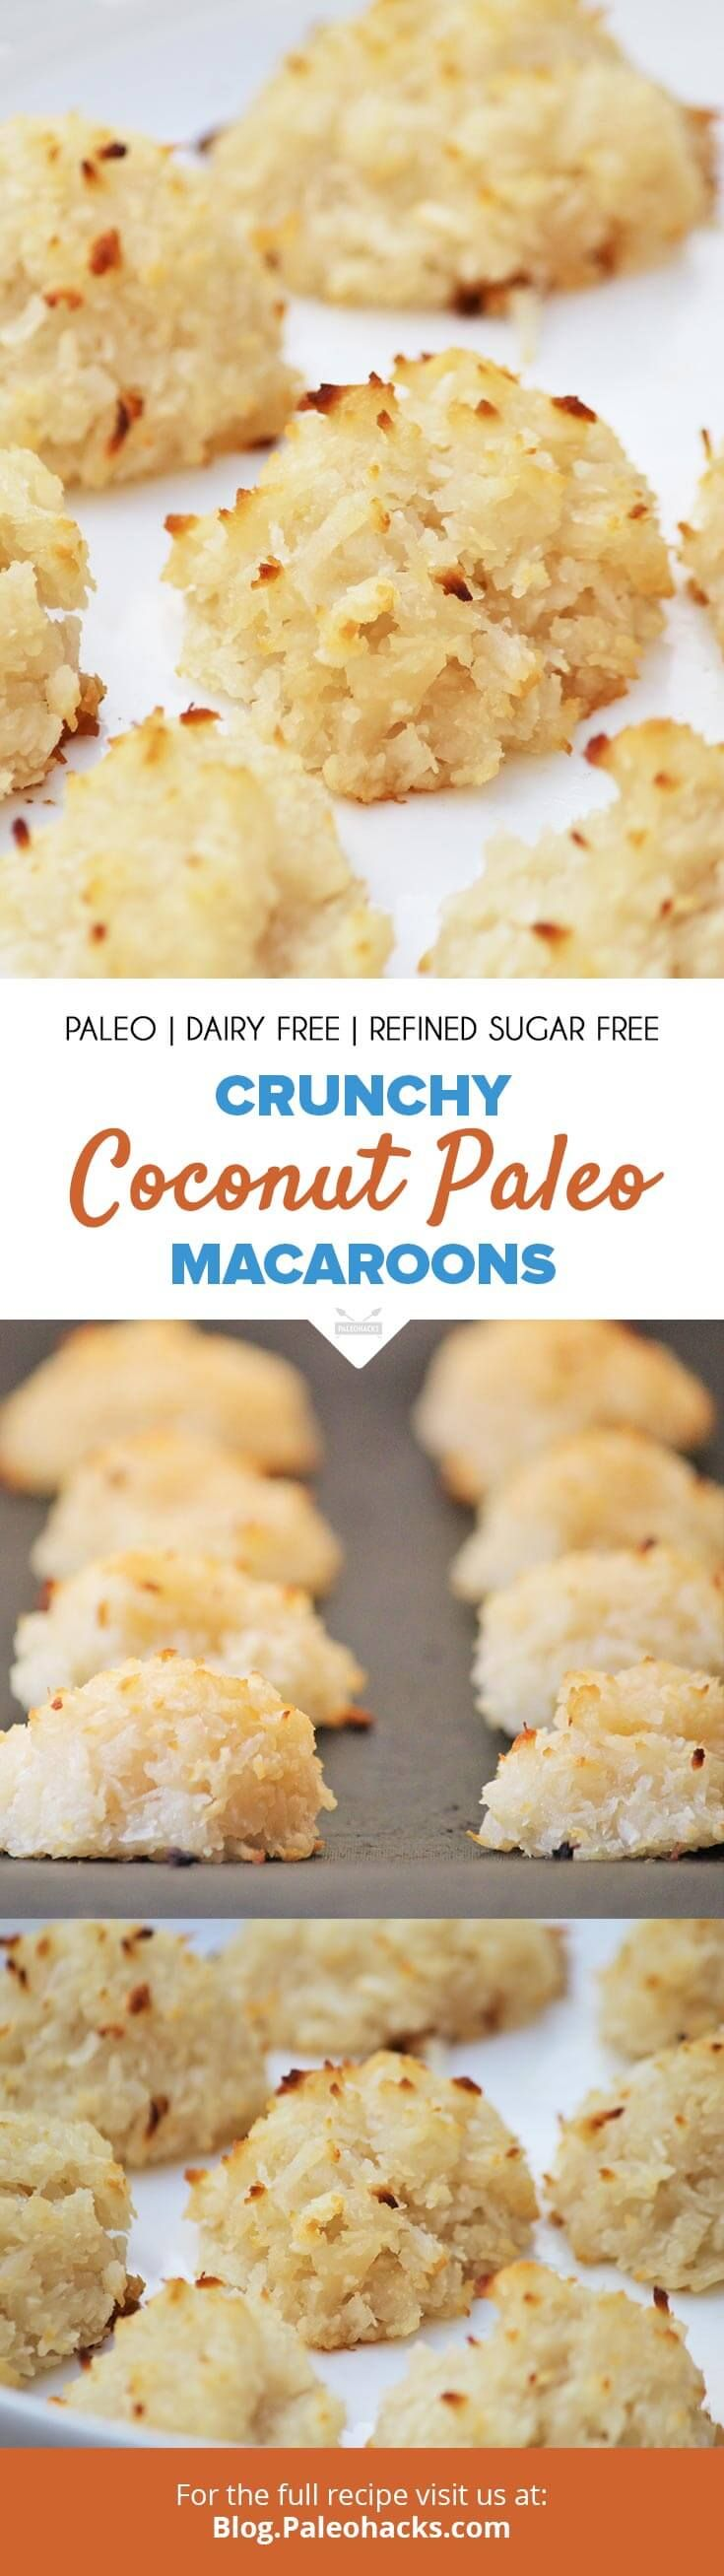 Let the sweet aroma capture your senses with these Paleo Coconut Macaroons. Get the full recipe here:  http://paleo.co/paleomacaroons